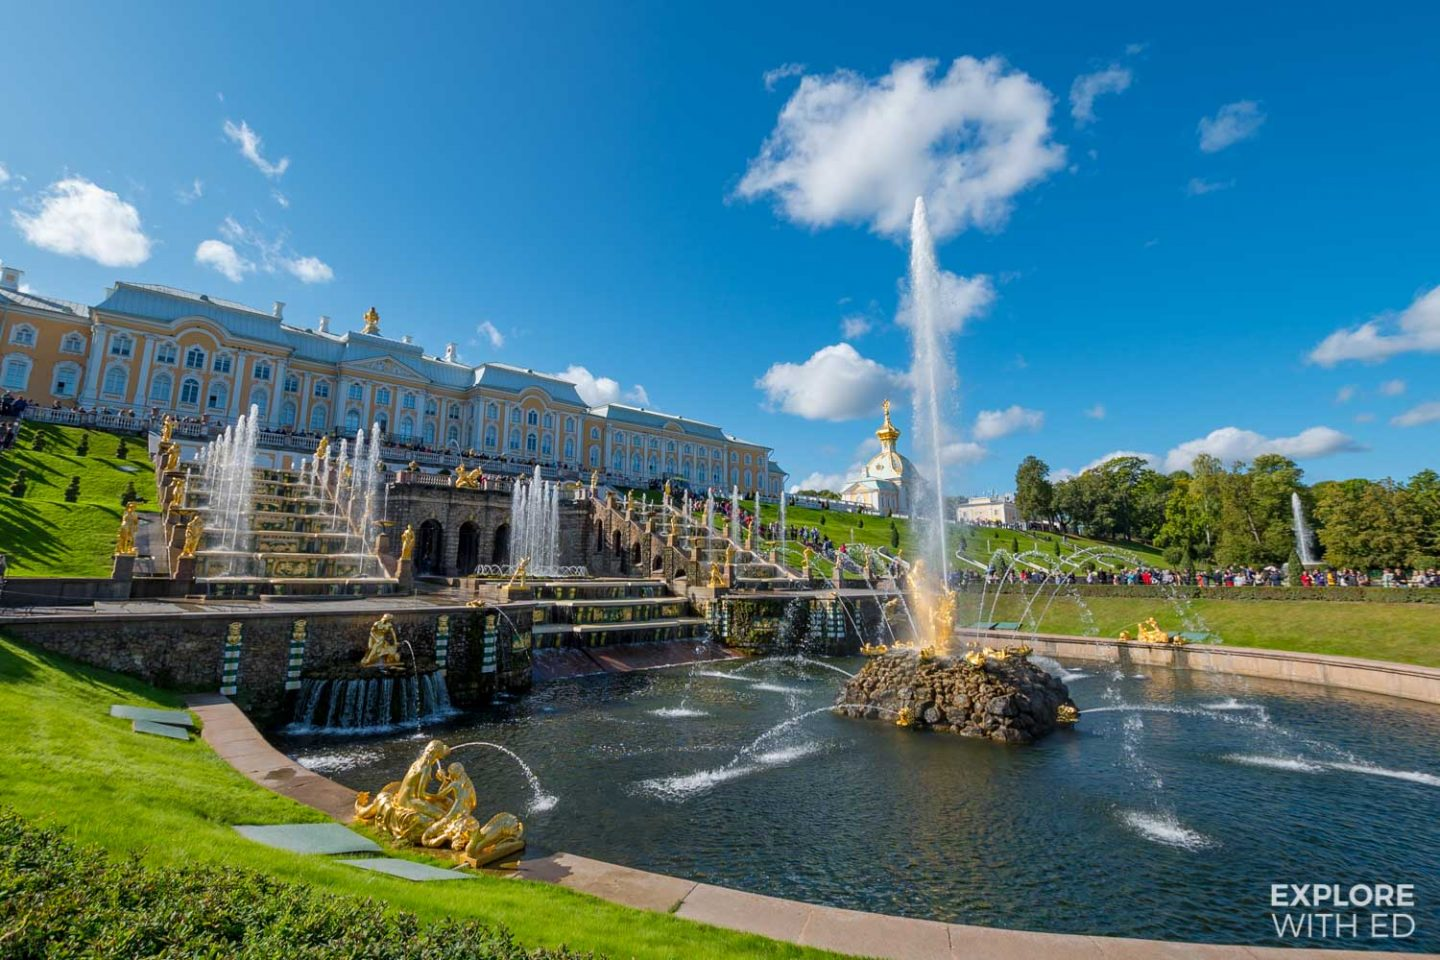 St. Petersburg Shore Excursion with Ludmila Tours